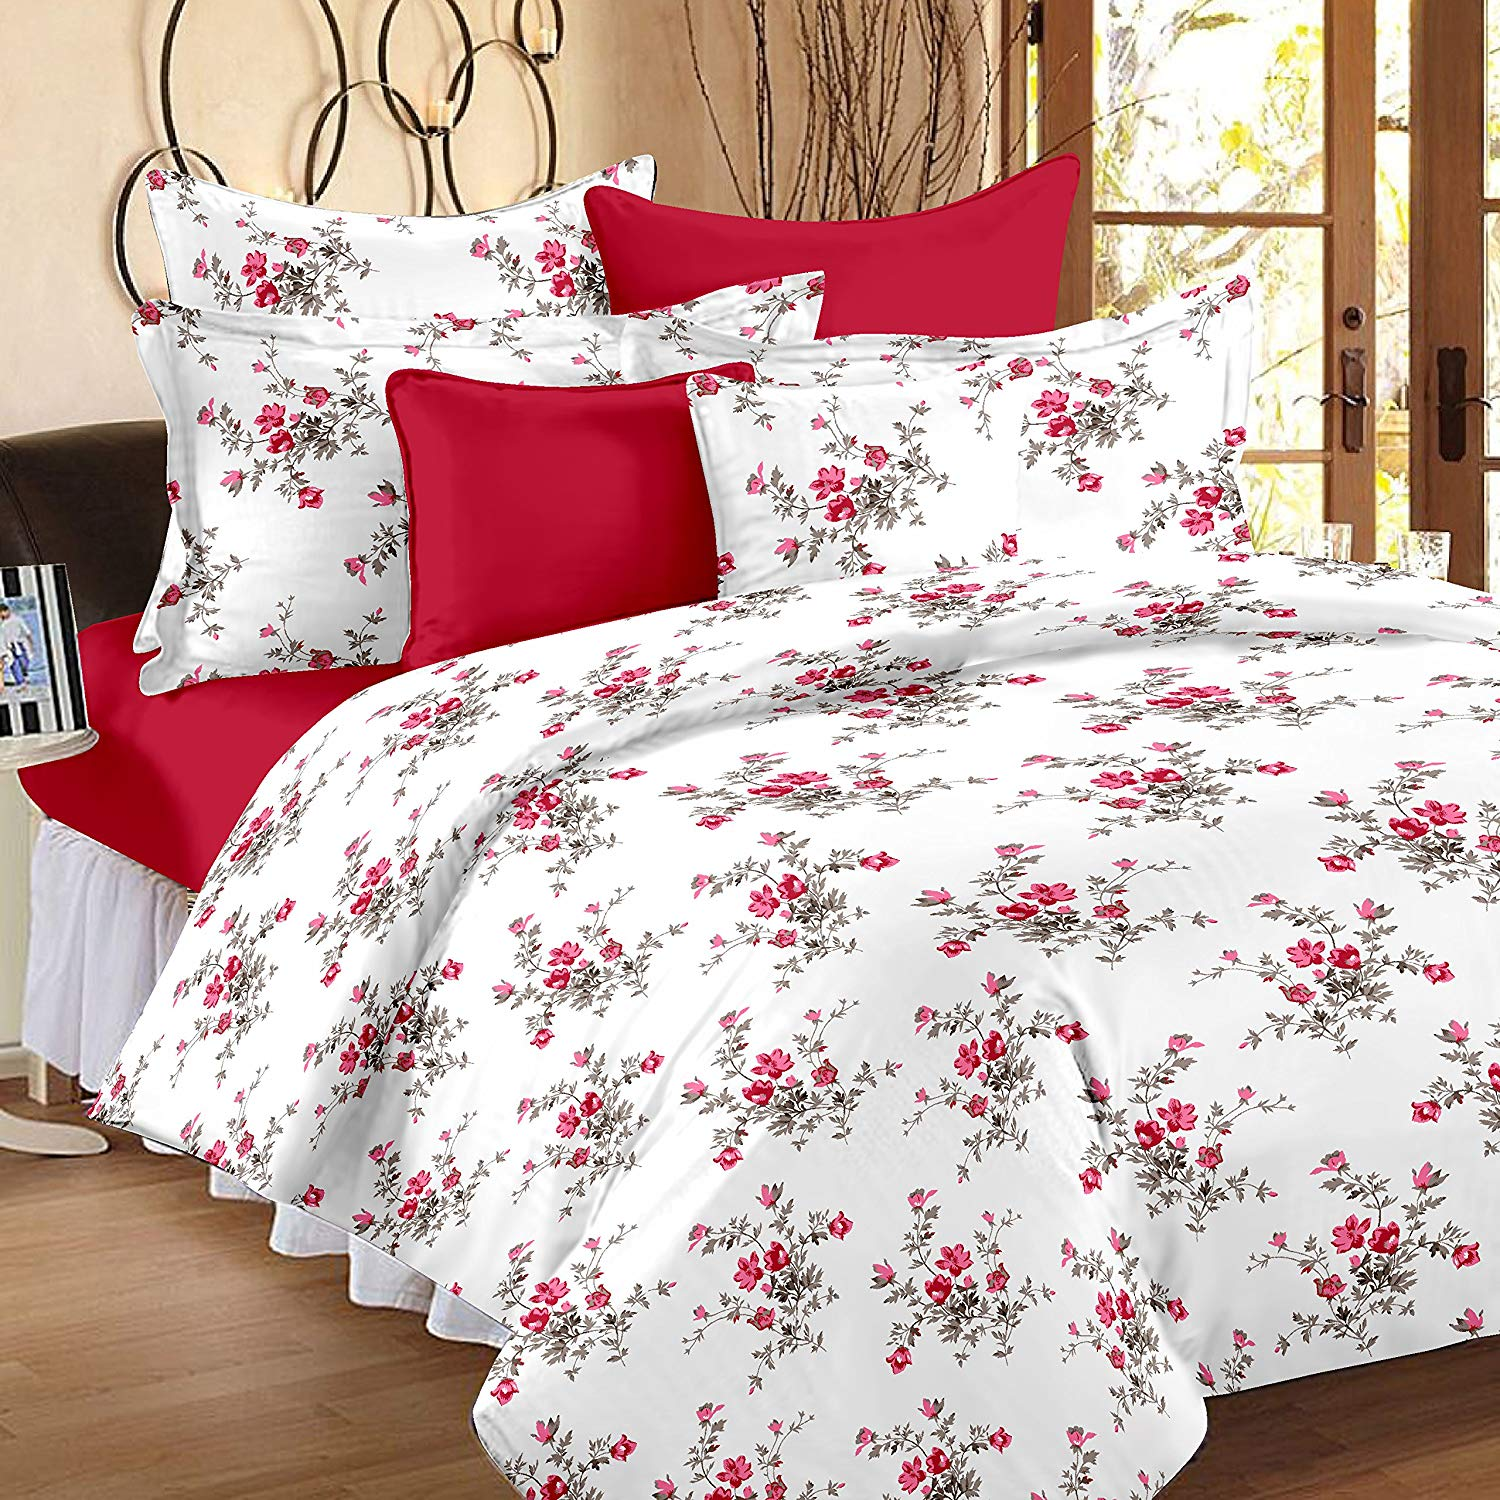 Ahmedabad 160 TC Cotton Comfort